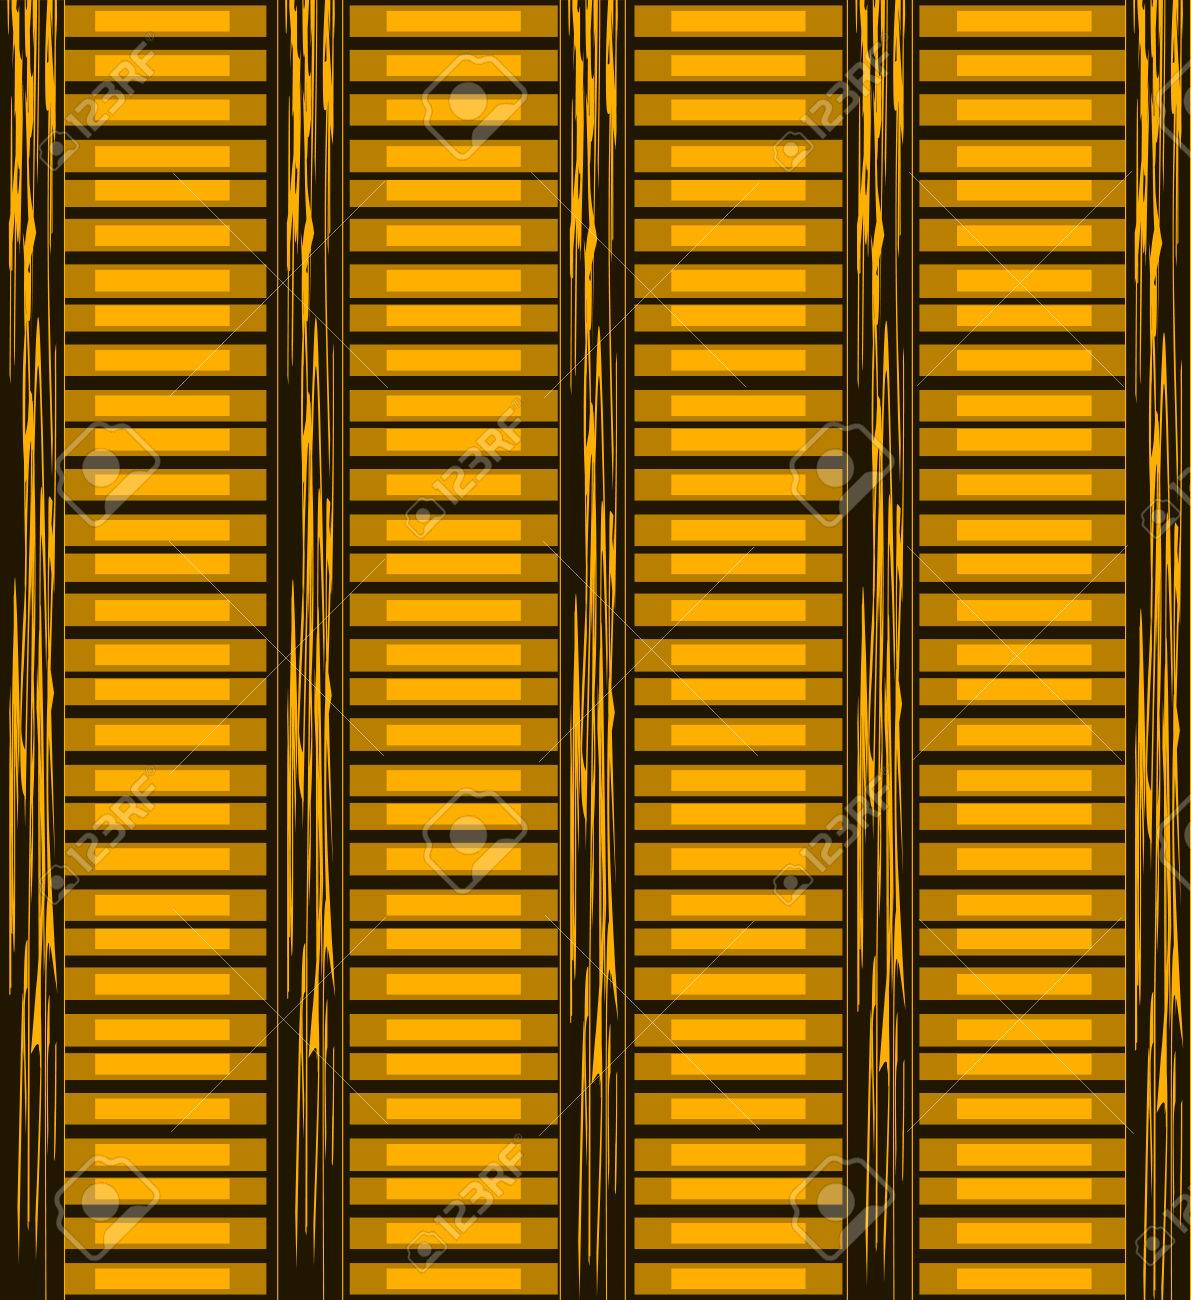 Background Of Wooden Slats. Blinds Vector Background Royalty Free